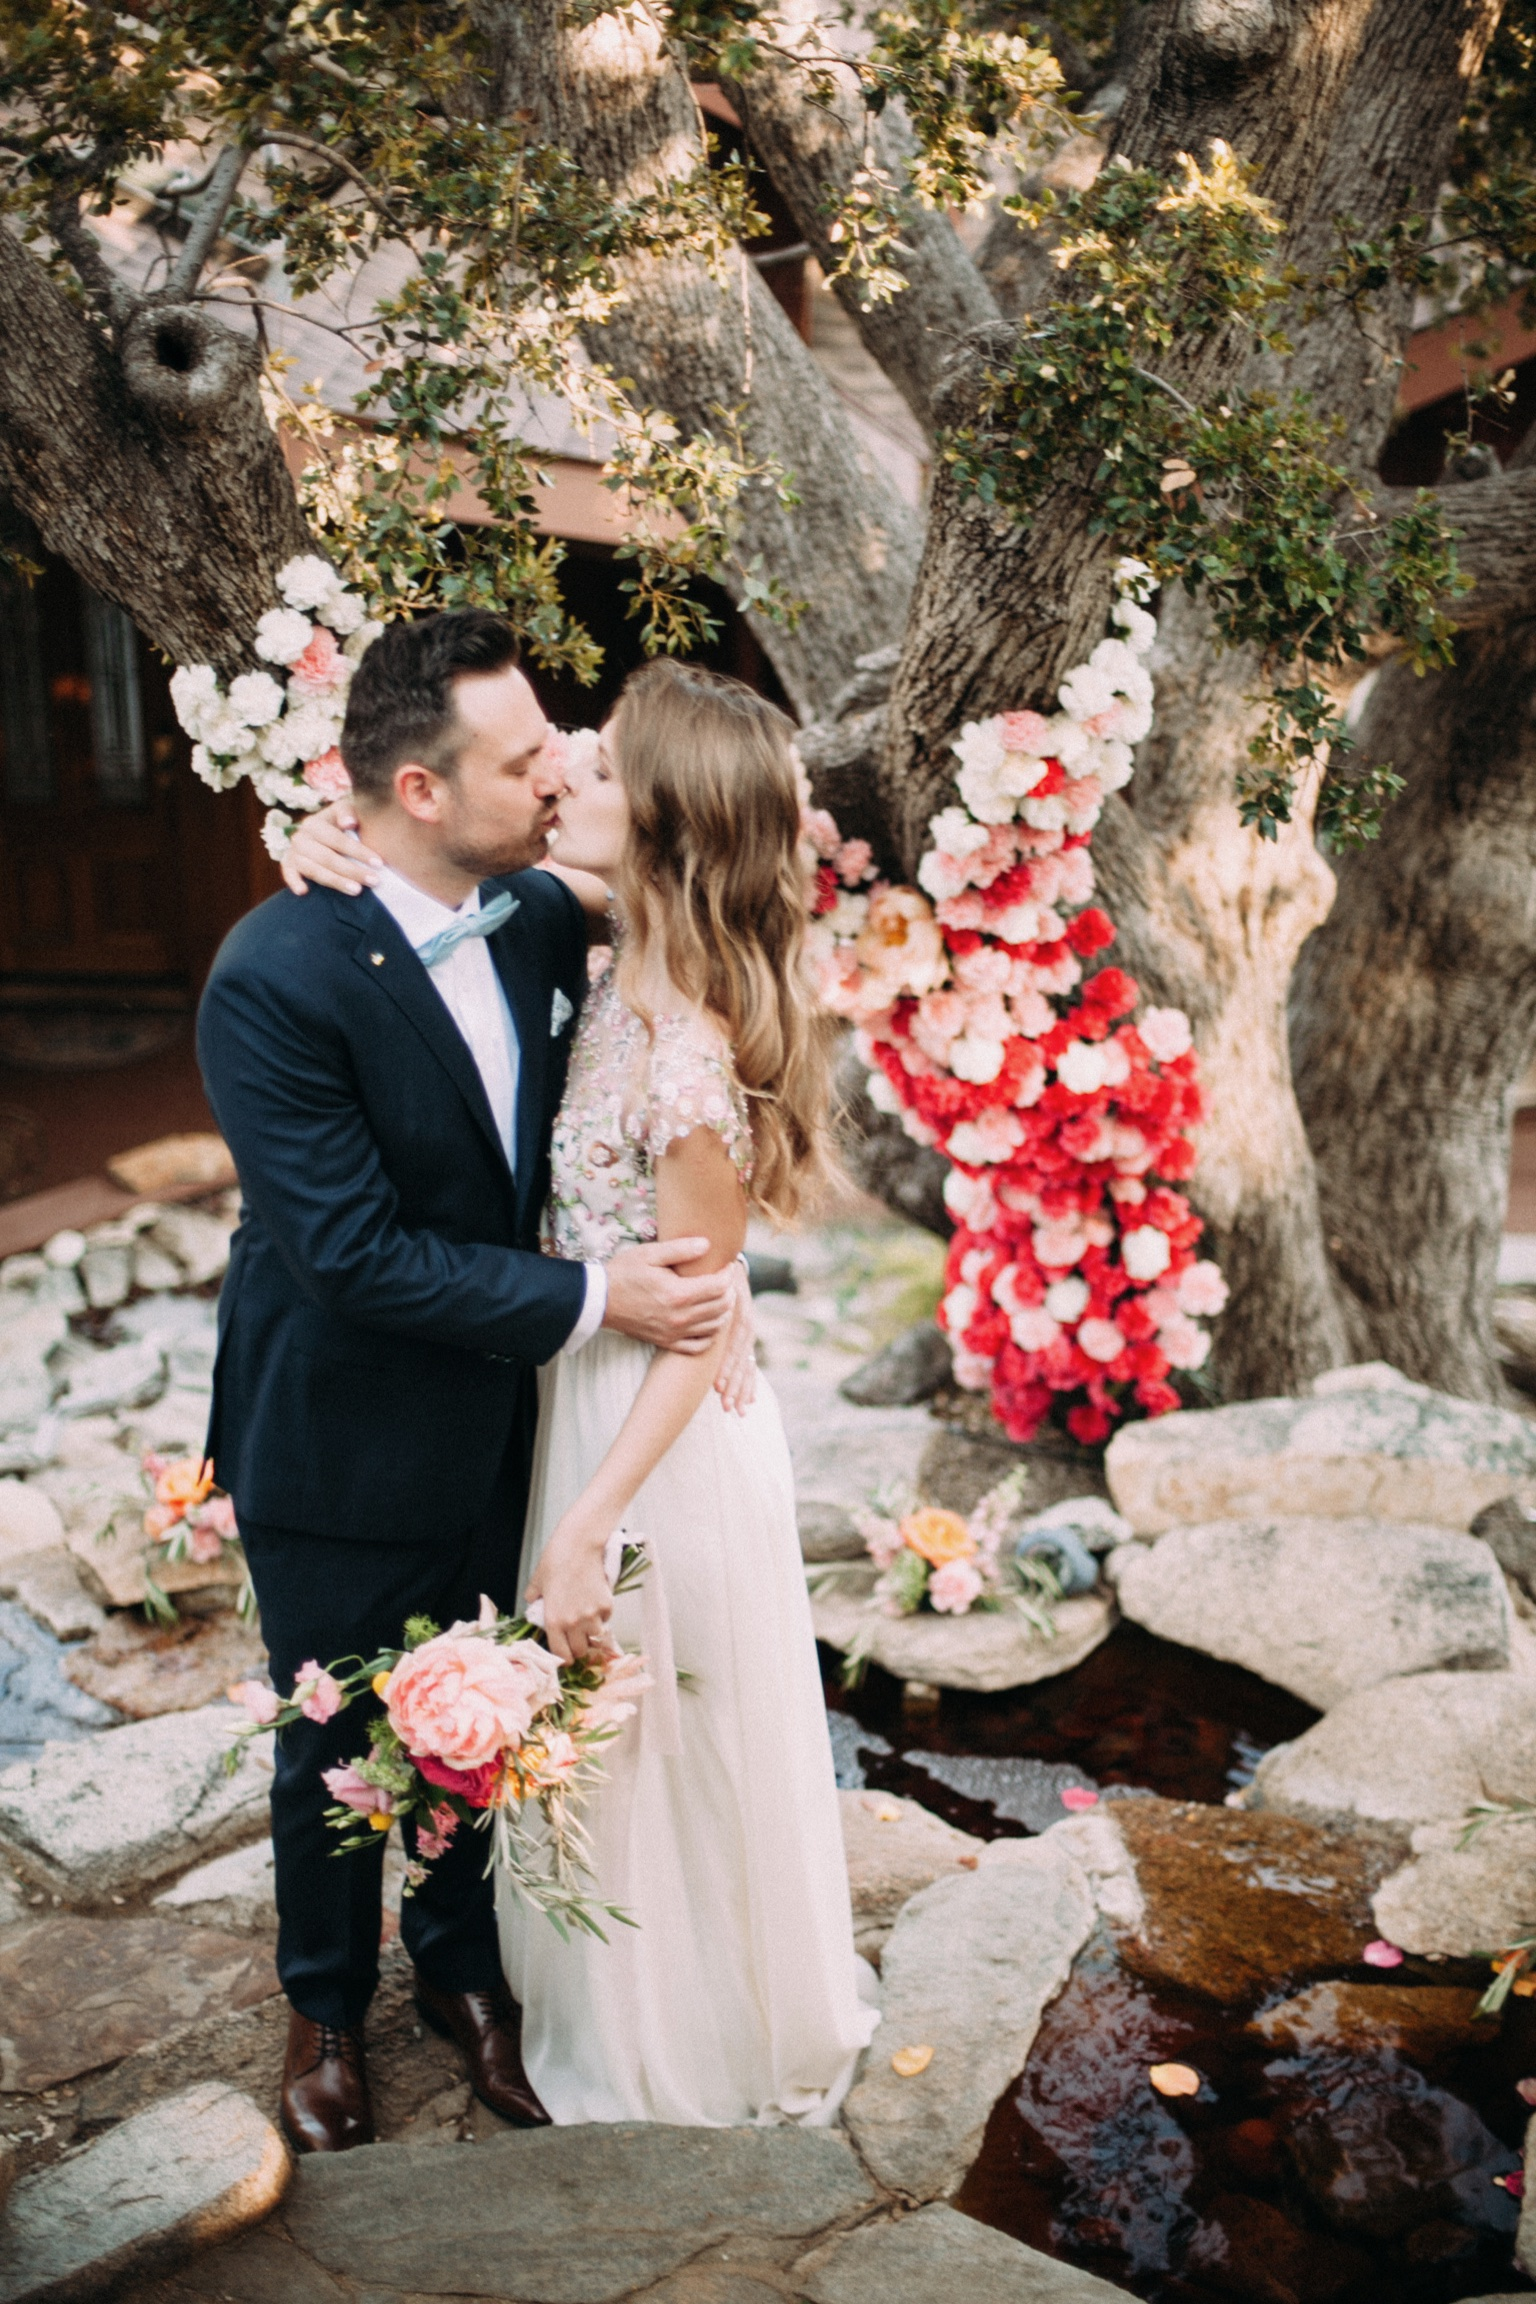 Wedding Florals - Red and Pink